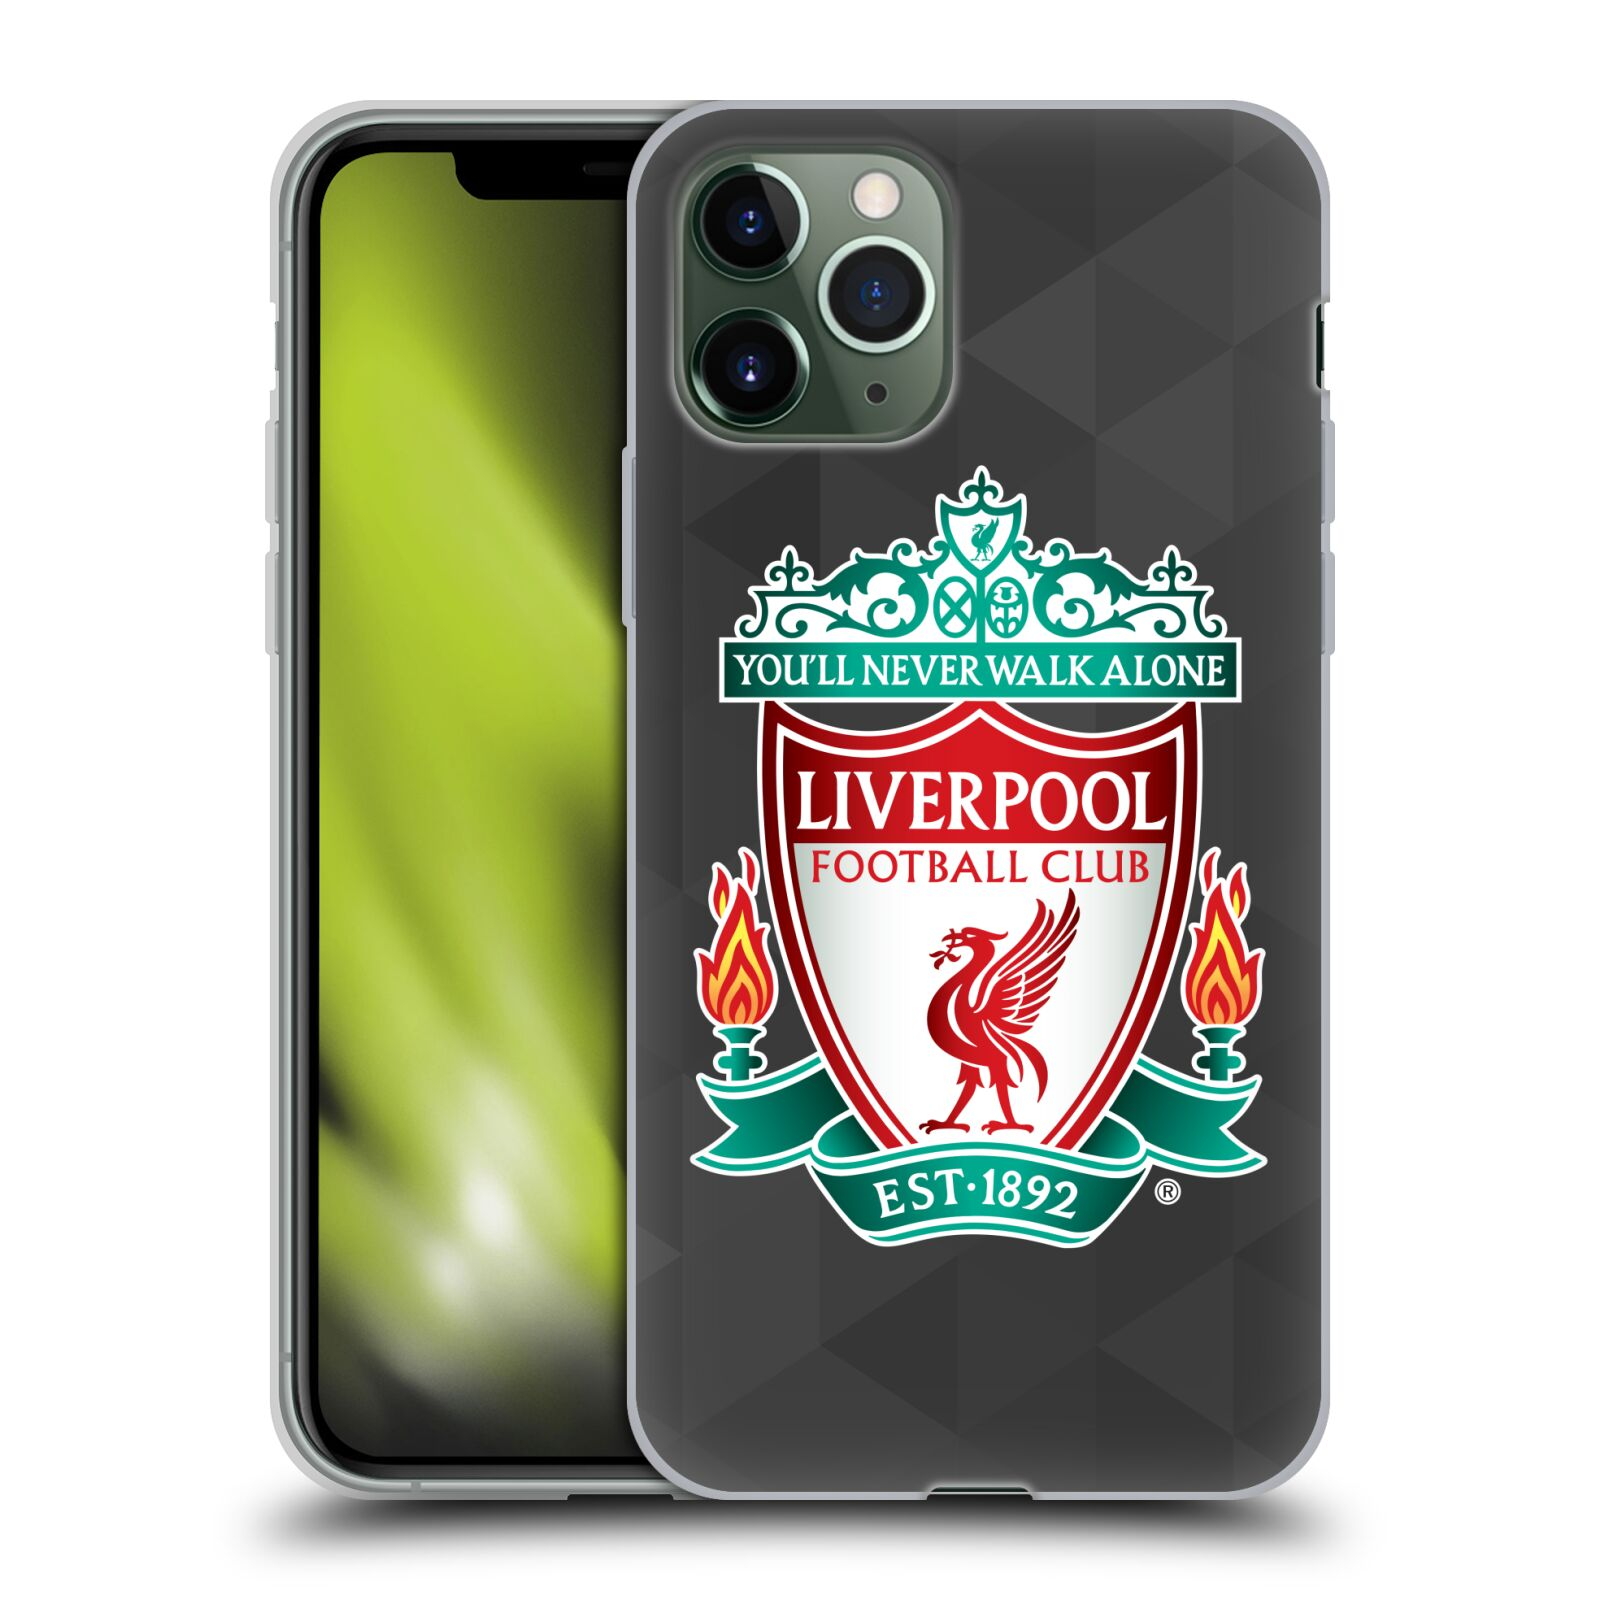 karl krytu na iphone 6 plus | Silikonové pouzdro na mobil Apple iPhone 11 Pro - Head Case - ZNAK LIVERPOOL FC OFFICIAL GEOMETRIC BLACK